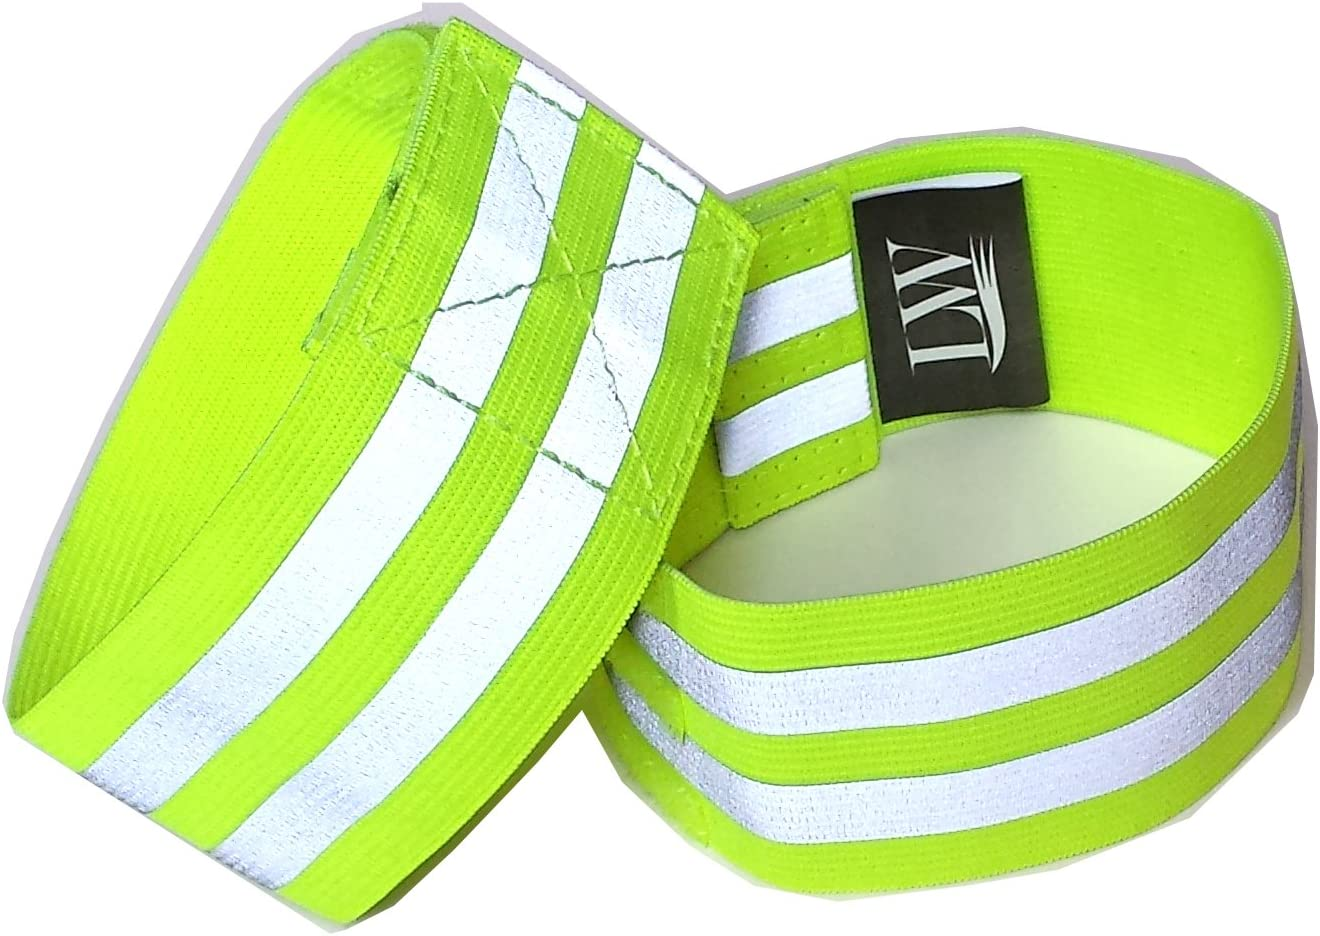 LW Reflective Ankle Band Wristband (Pair) Yellow Pink with Bonus Reflective Sticker